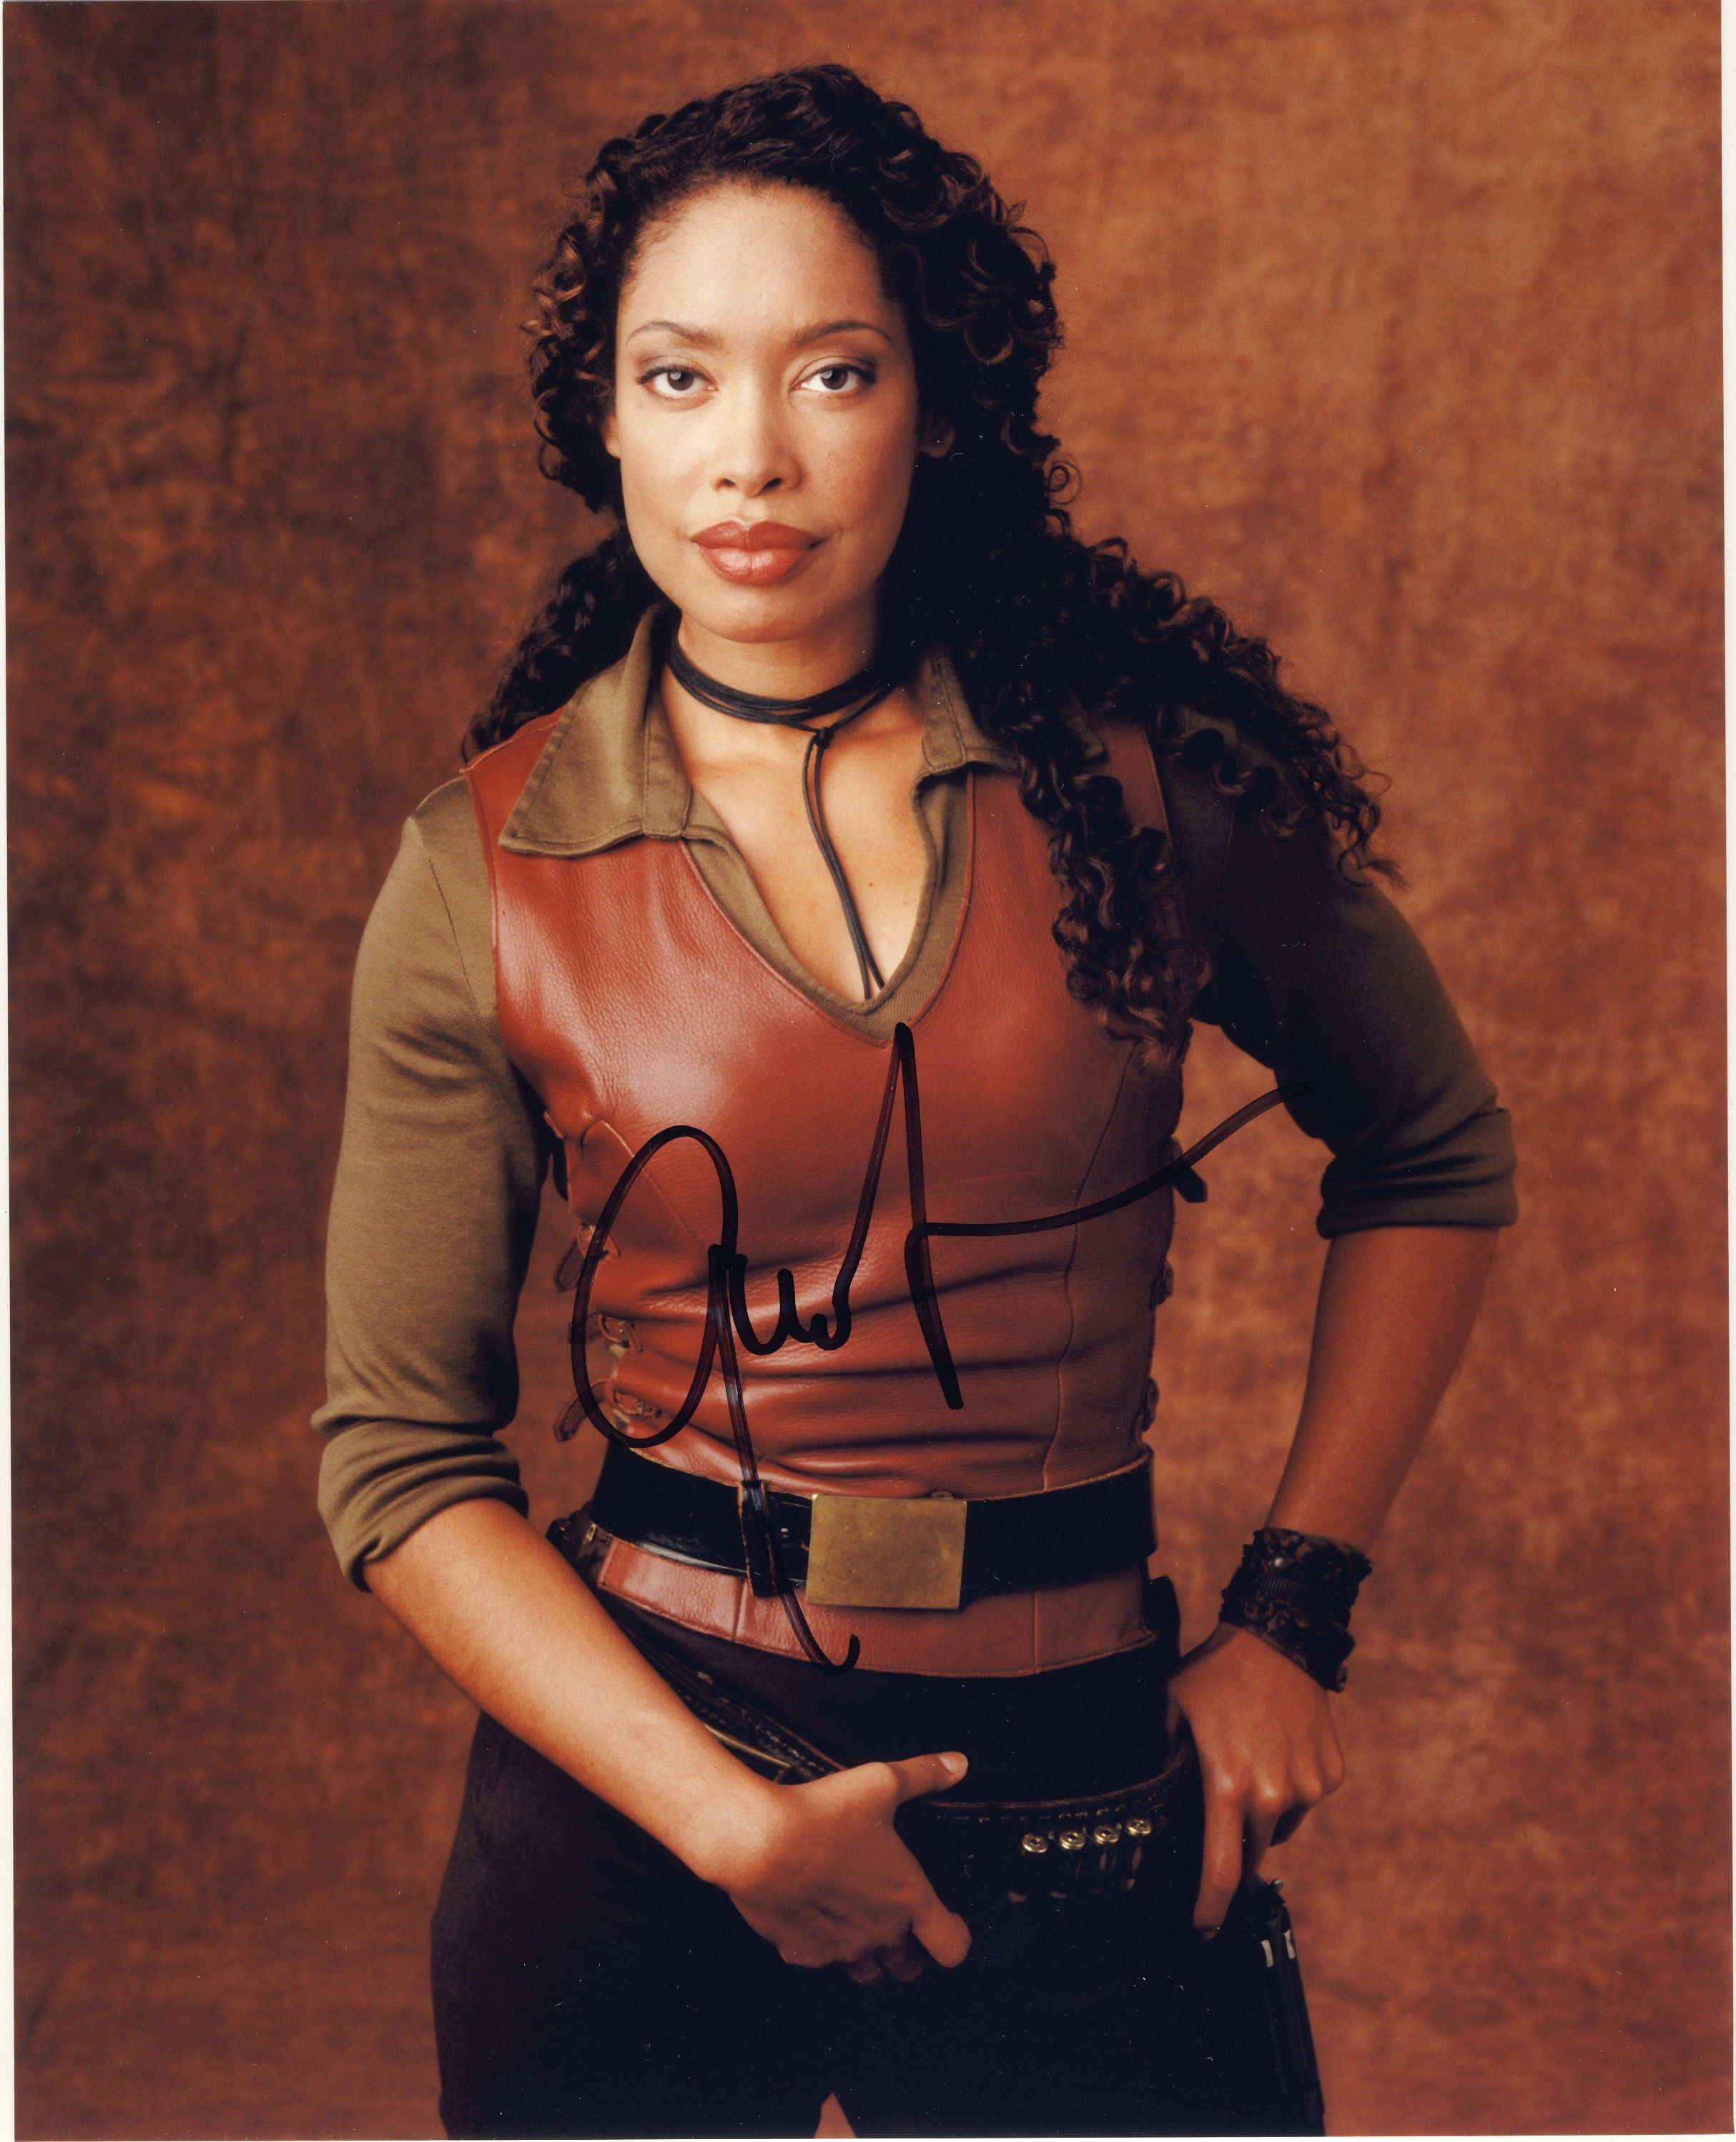 Authoritative gina torres hot sex commit